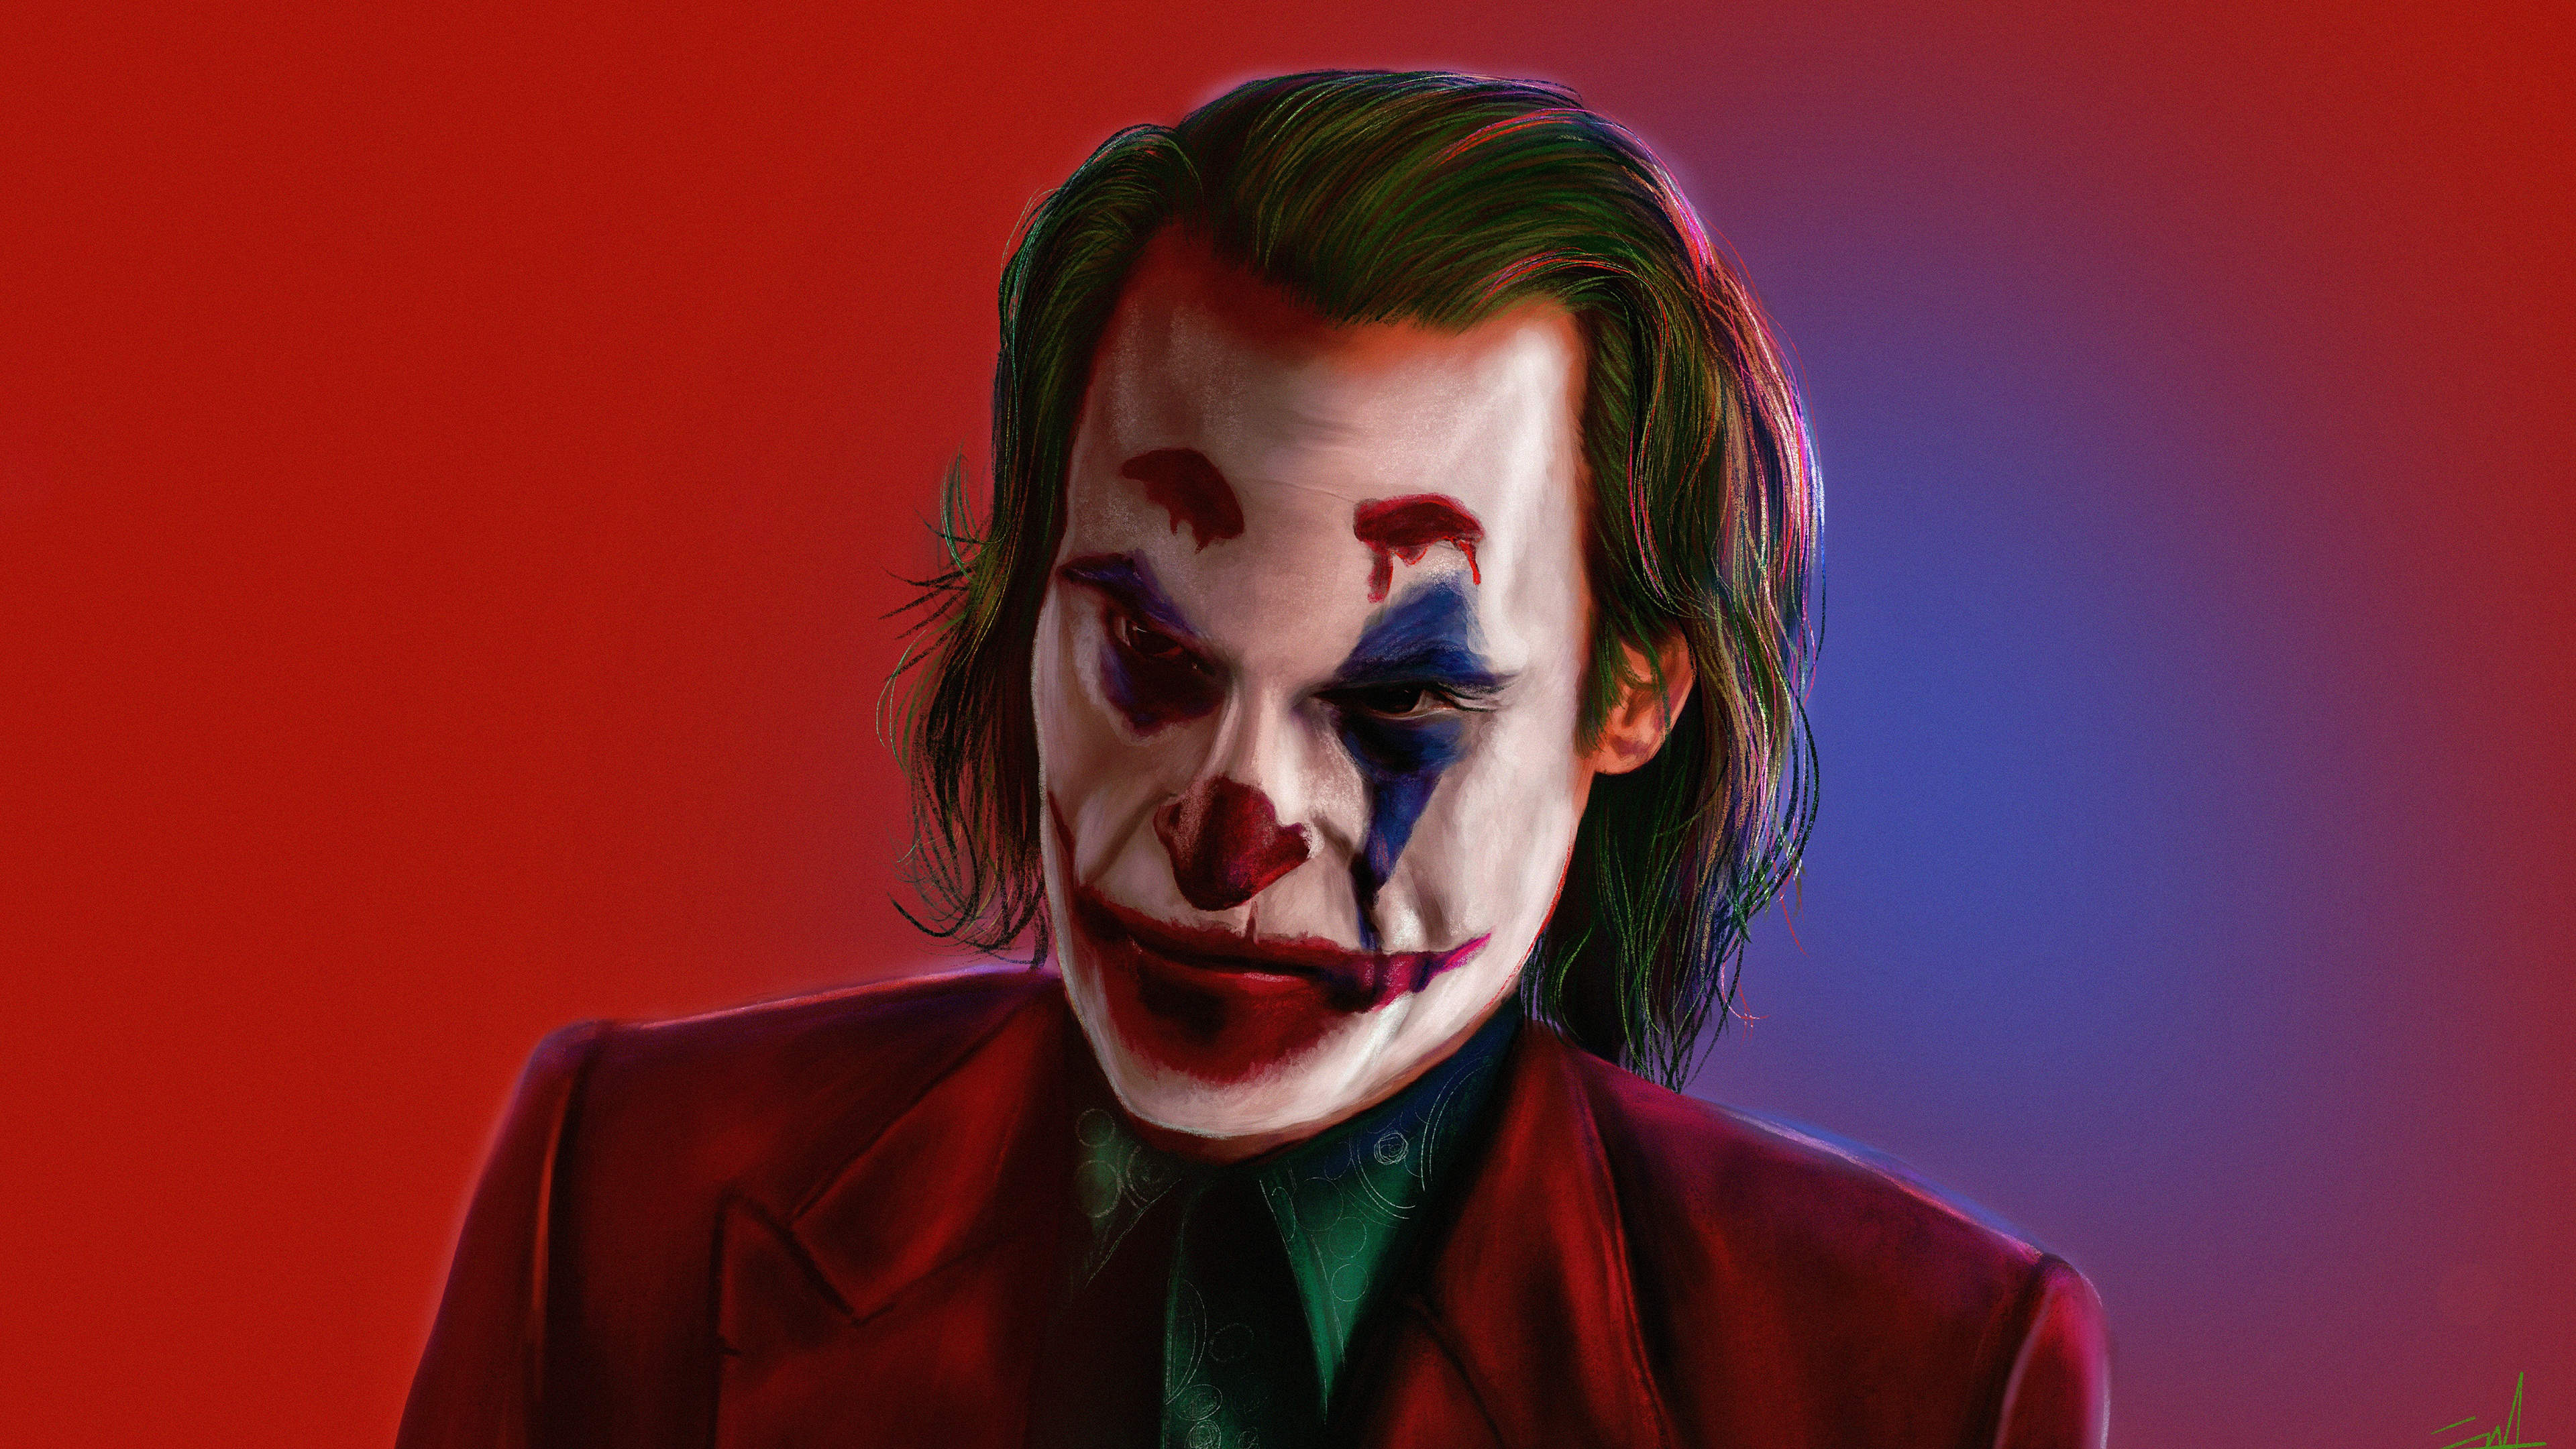 the joker joaquin phoenix artwork 1569186964 - The Joker Joaquin Phoenix Artwork - supervillain wallpapers, superheroes wallpapers, joker wallpapers, joker movie wallpapers, joaquin phoenix wallpapers, hd-wallpapers, digital art wallpapers, behance wallpapers, artwork wallpapers, artist wallpapers, 4k-wallpapers